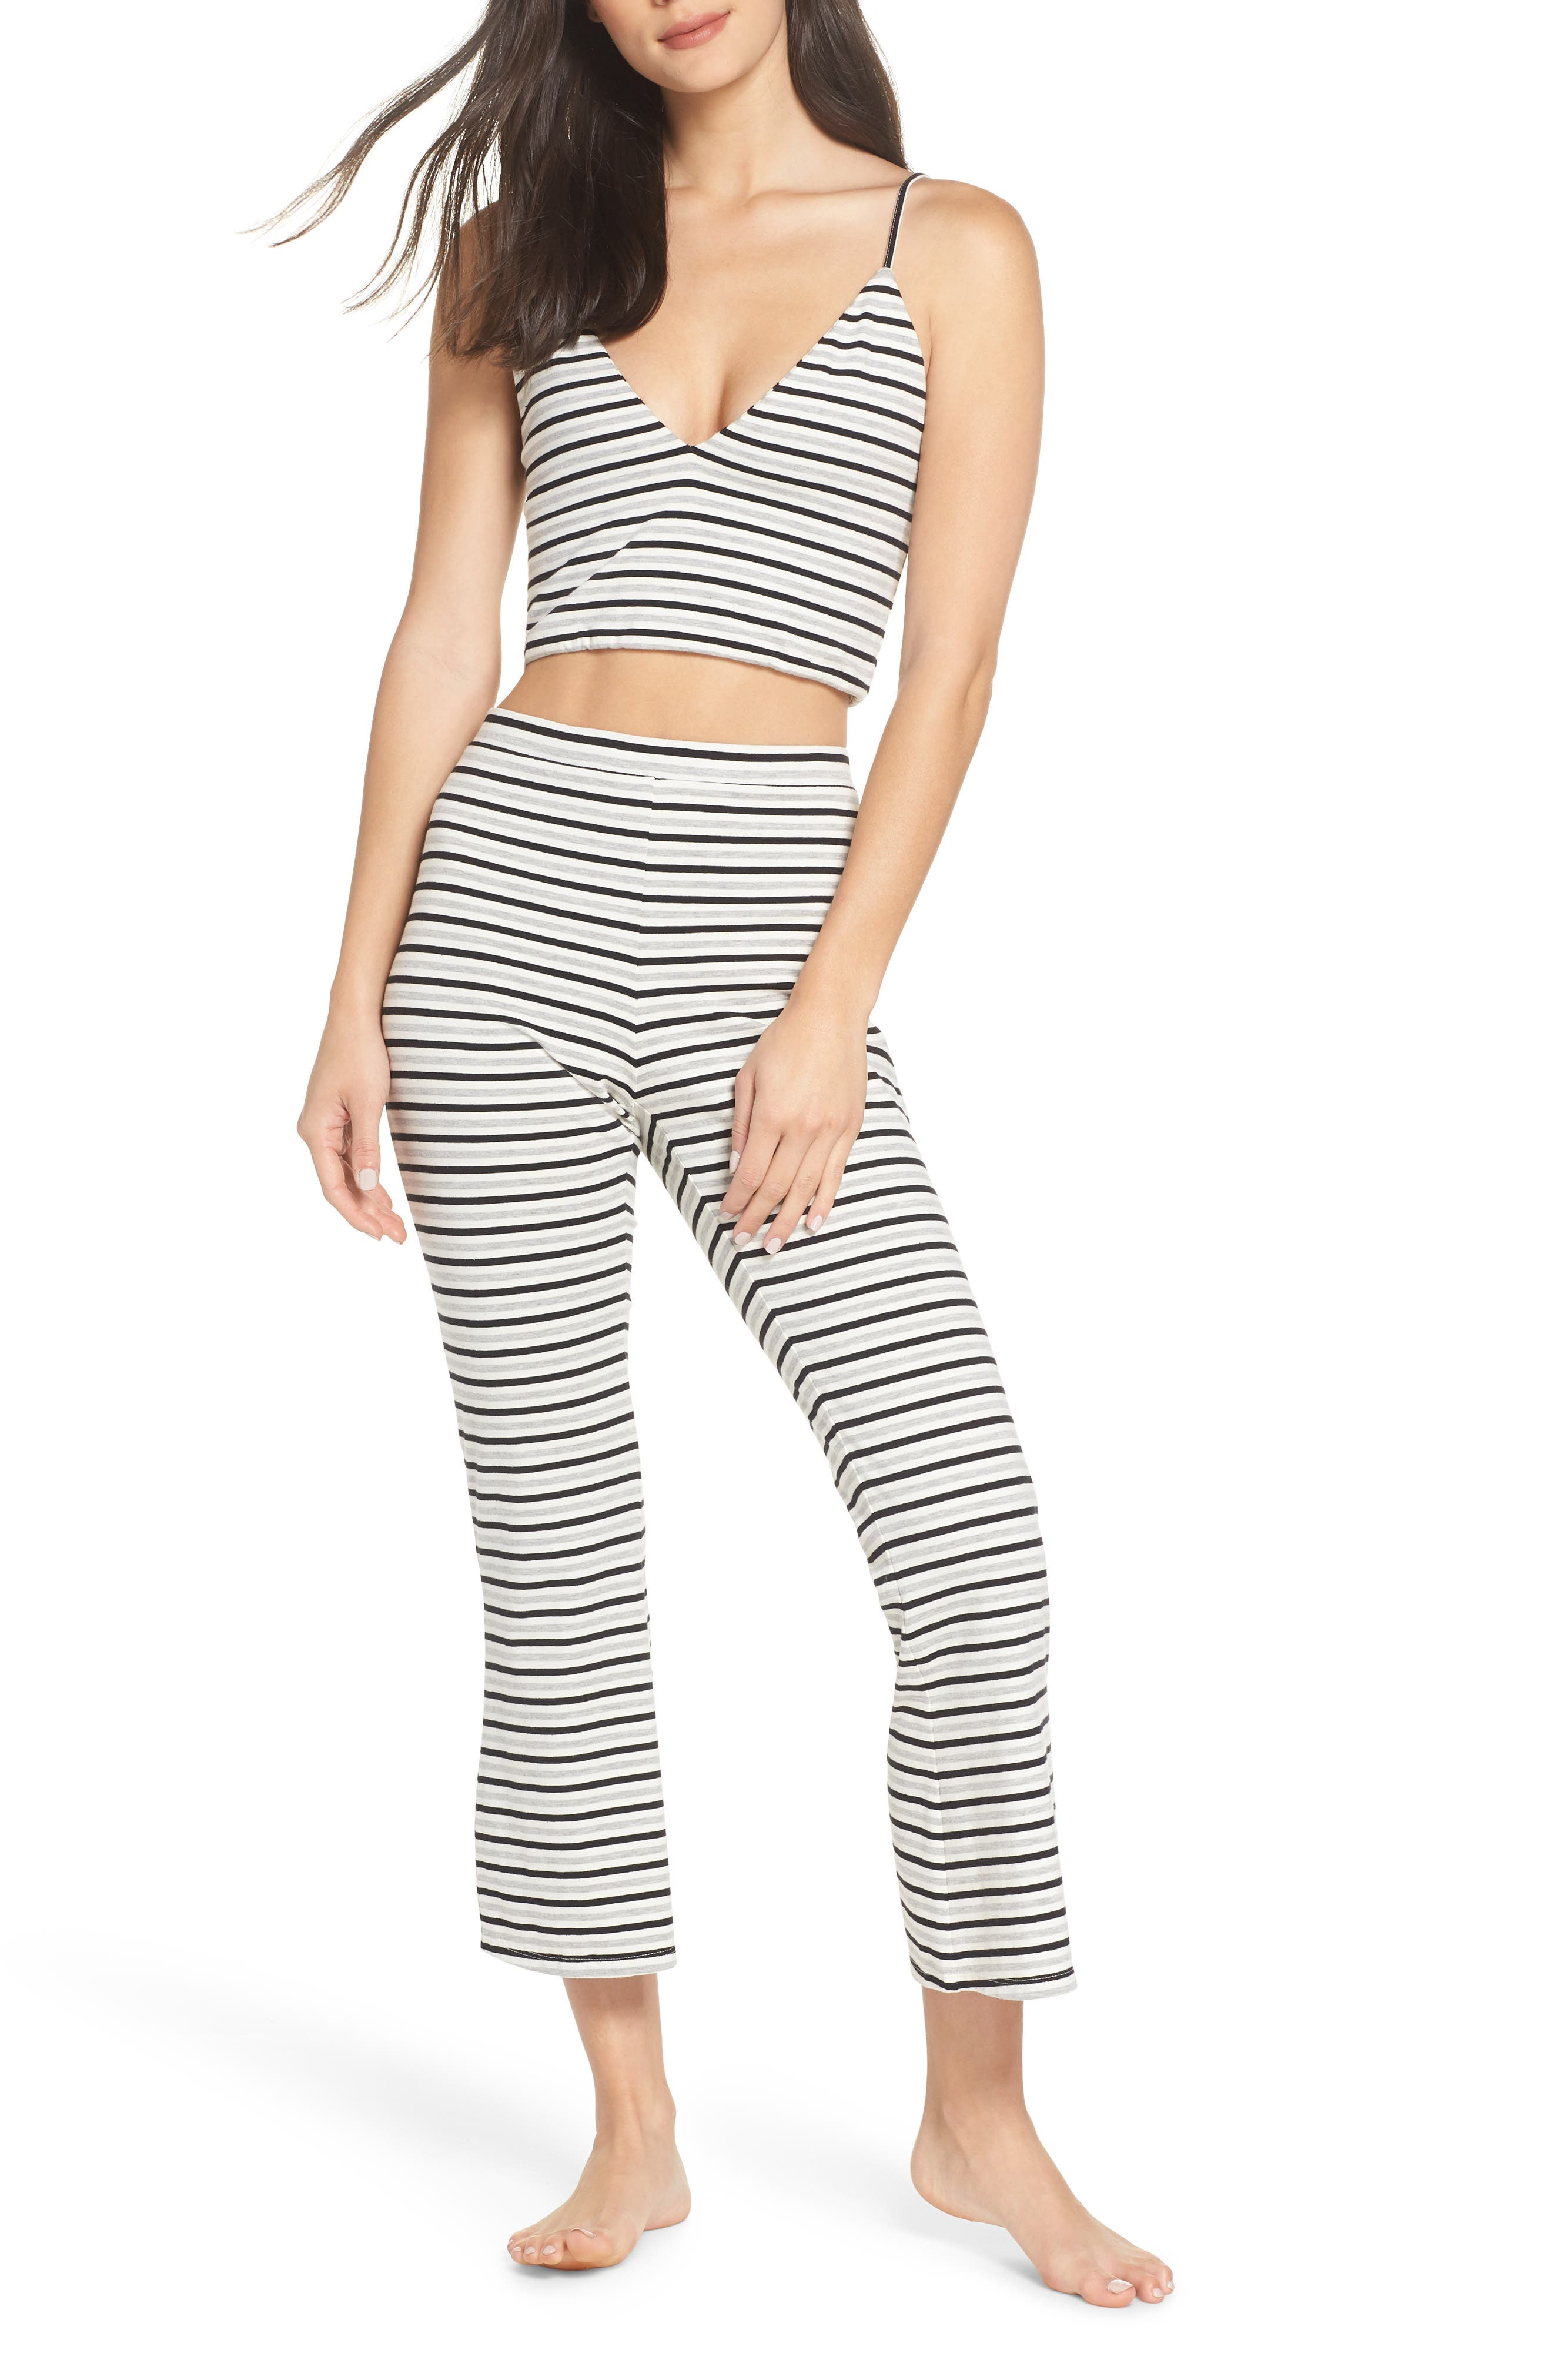 Flare for Drama Crop Lounge Pants,                             Alternate thumbnail 7, color,                             IVORY